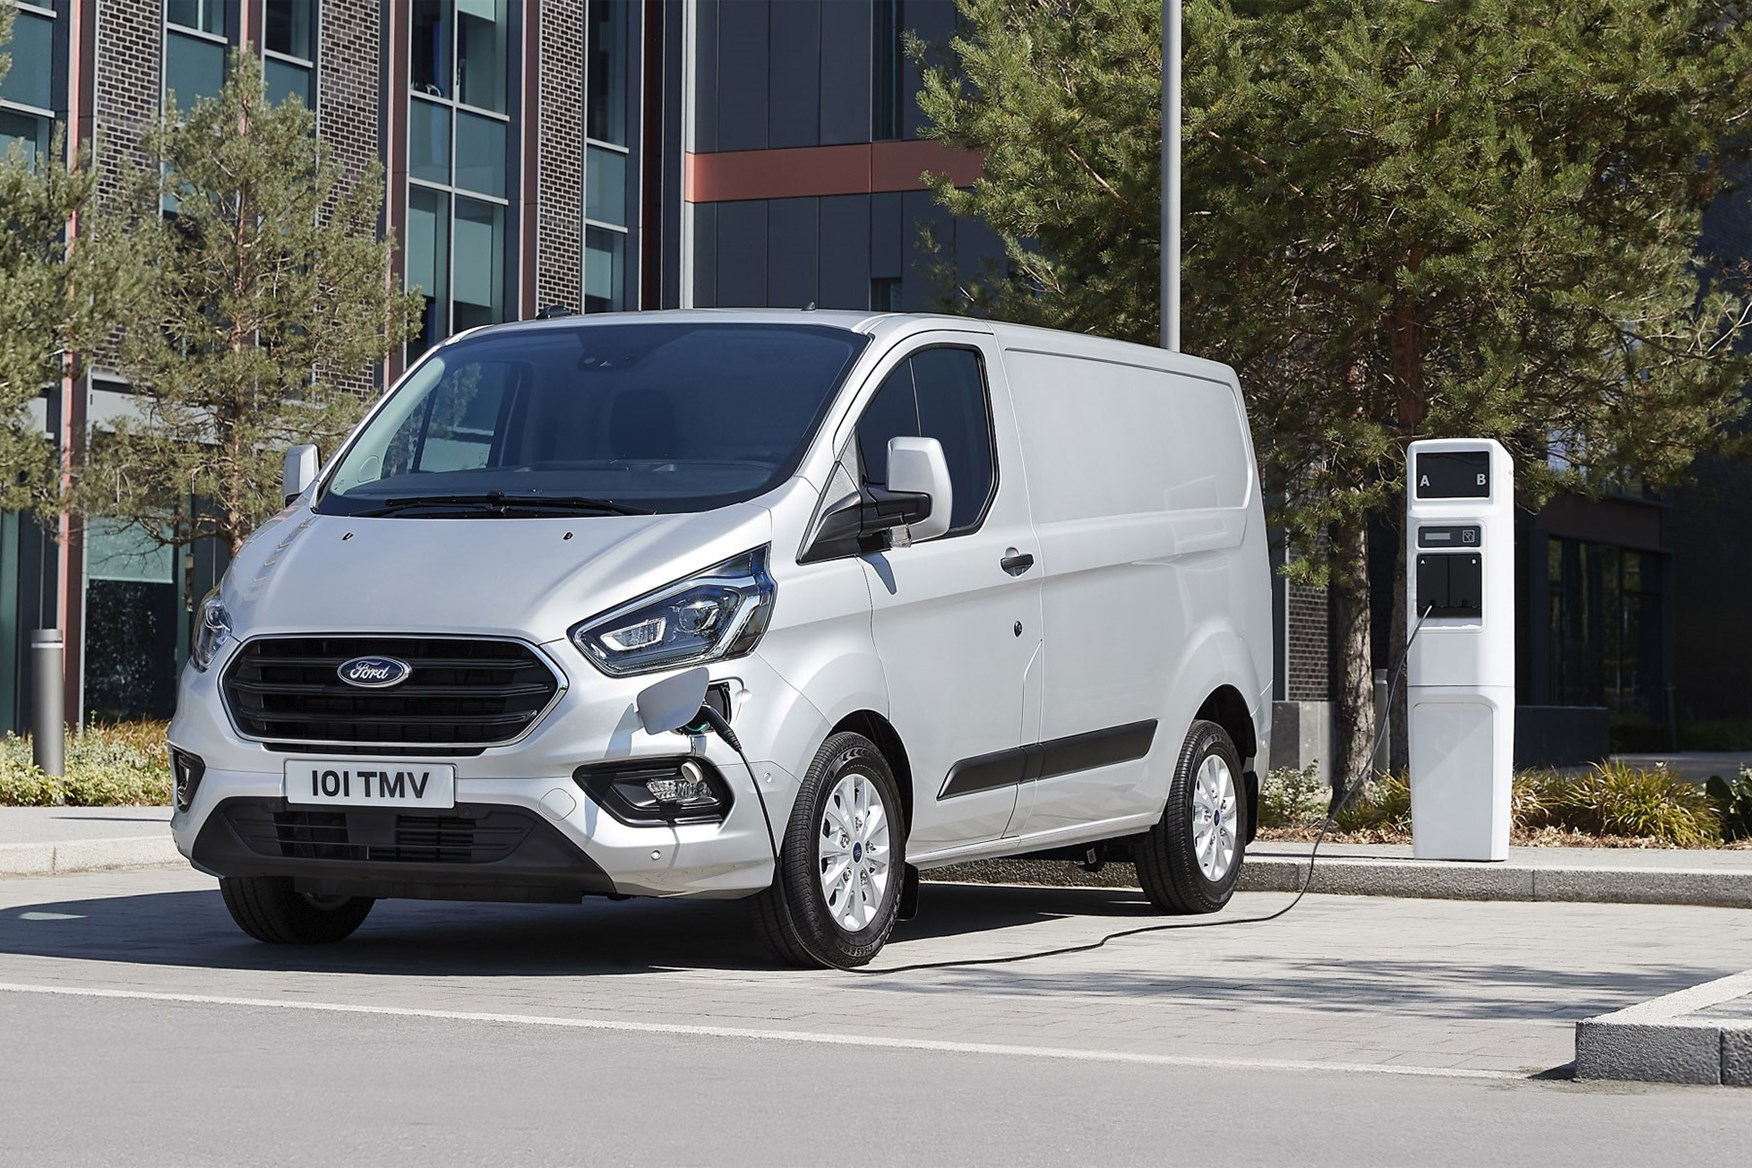 dc5f728b20 ... hybrid Ford Transit Custom PHEV 2019 production version - front view